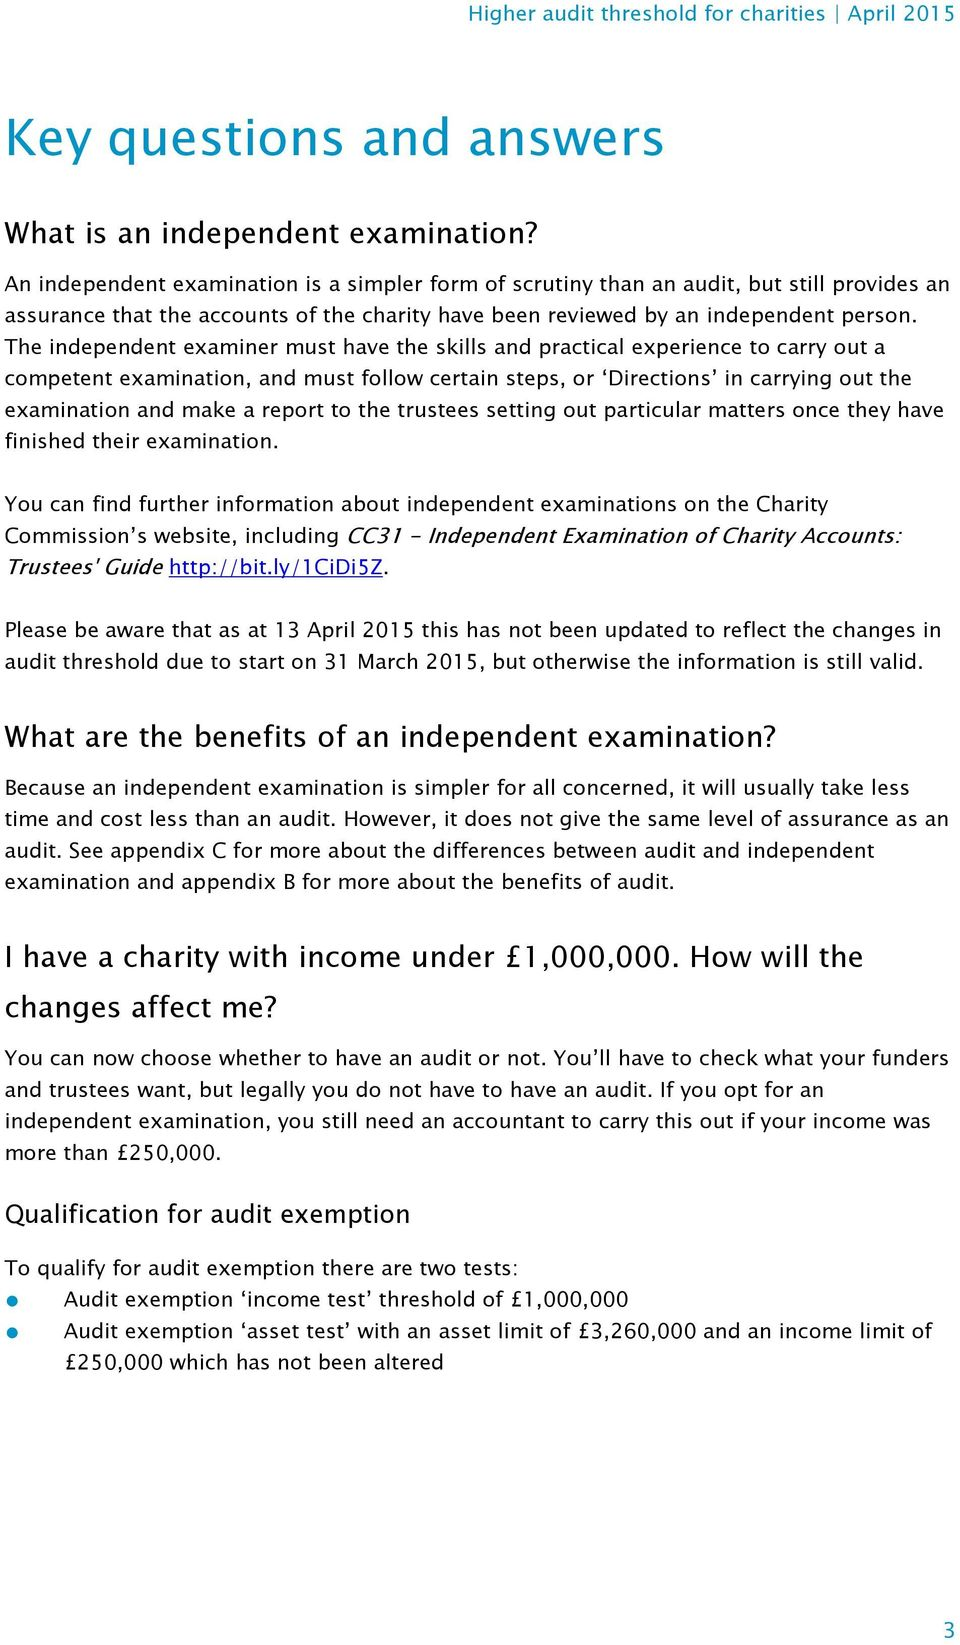 Higher audit threshold for charities - PDF